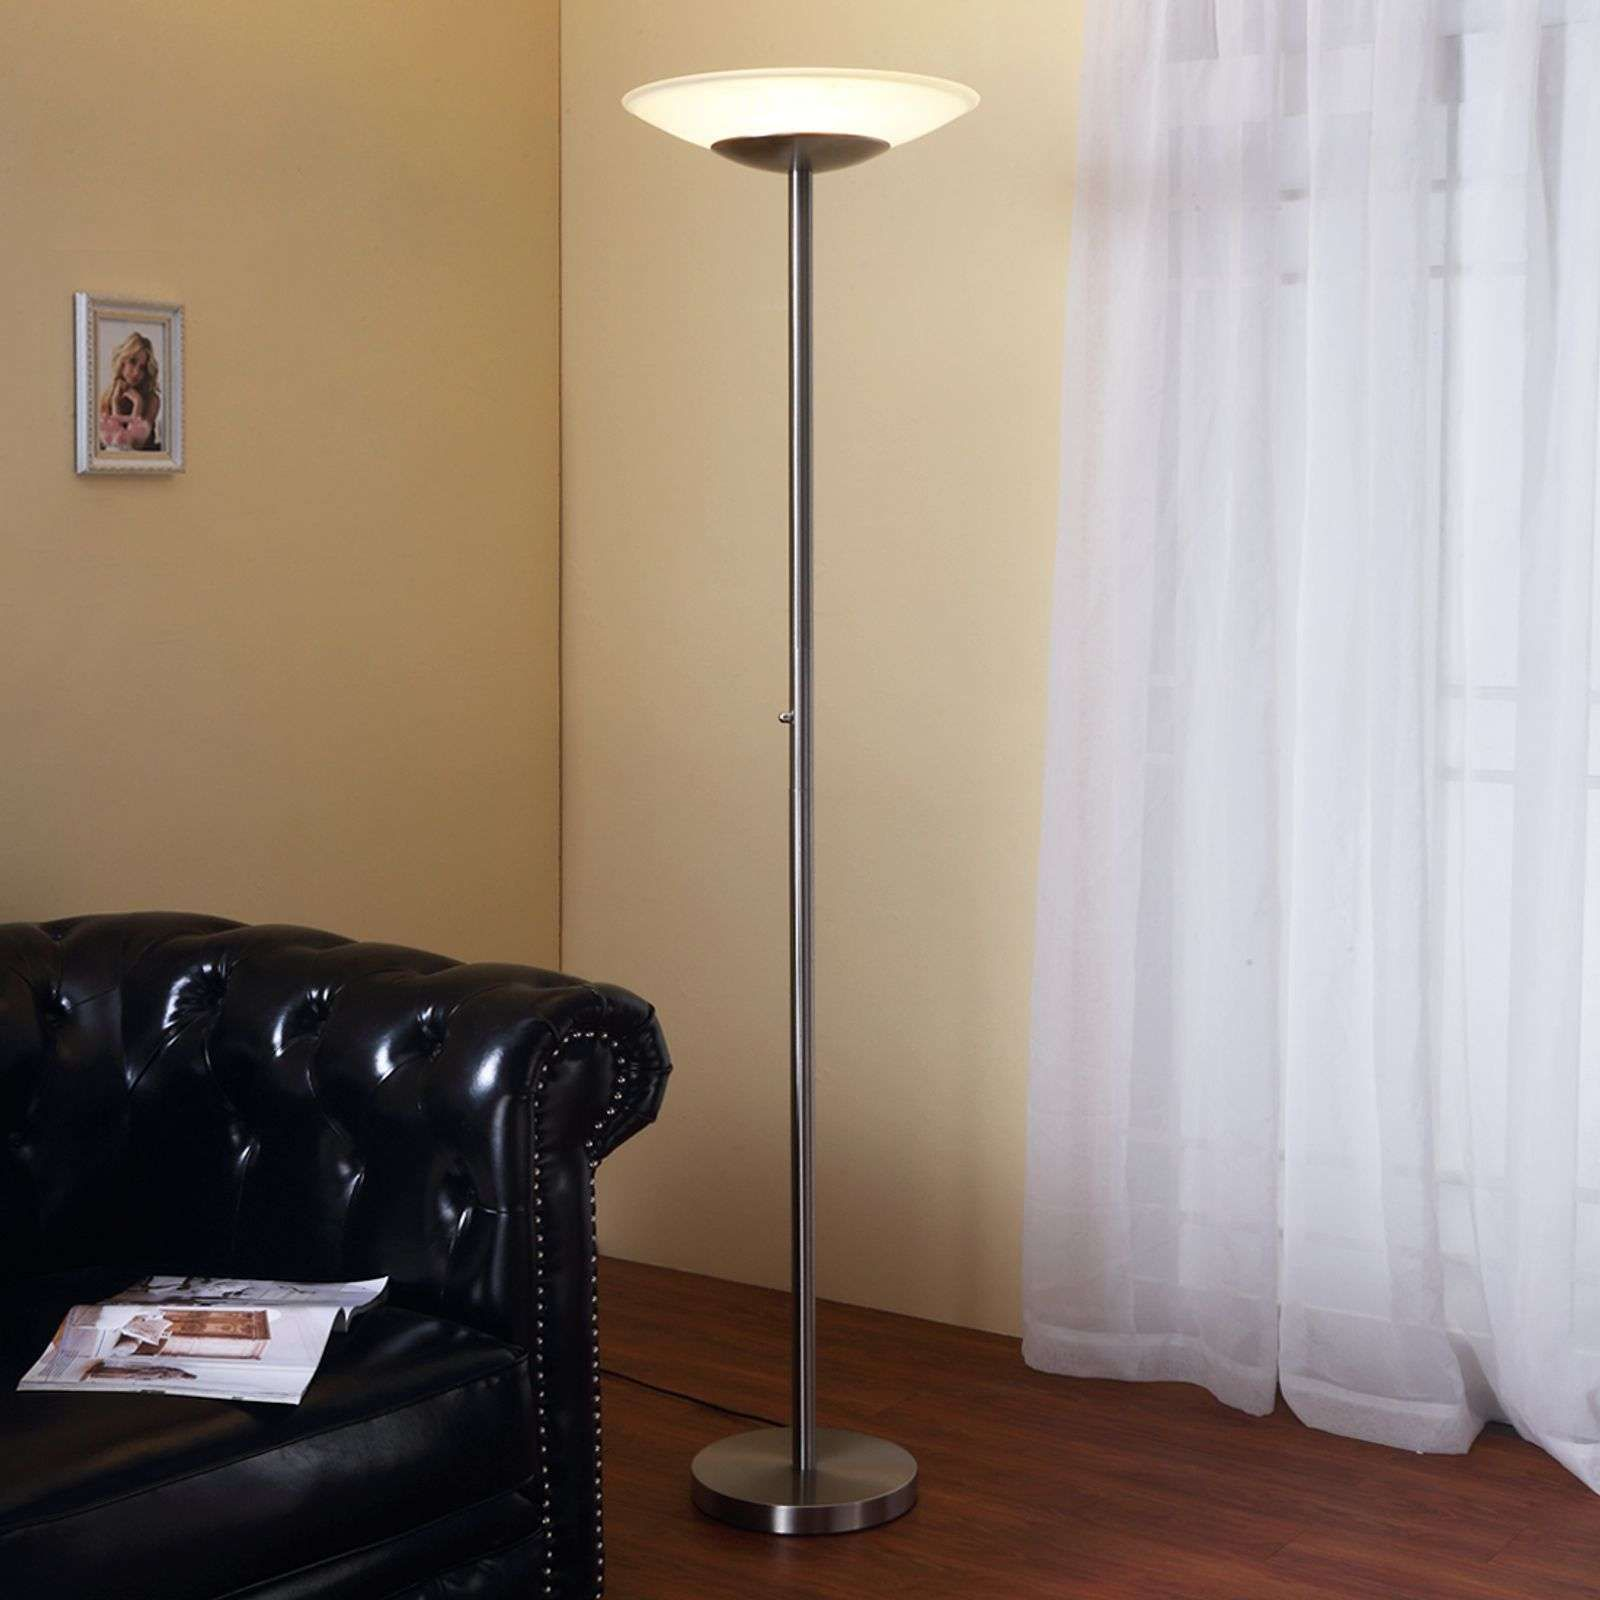 Lampadaire A Eclairage Indirect Led Ragna Nickel Lampadaire